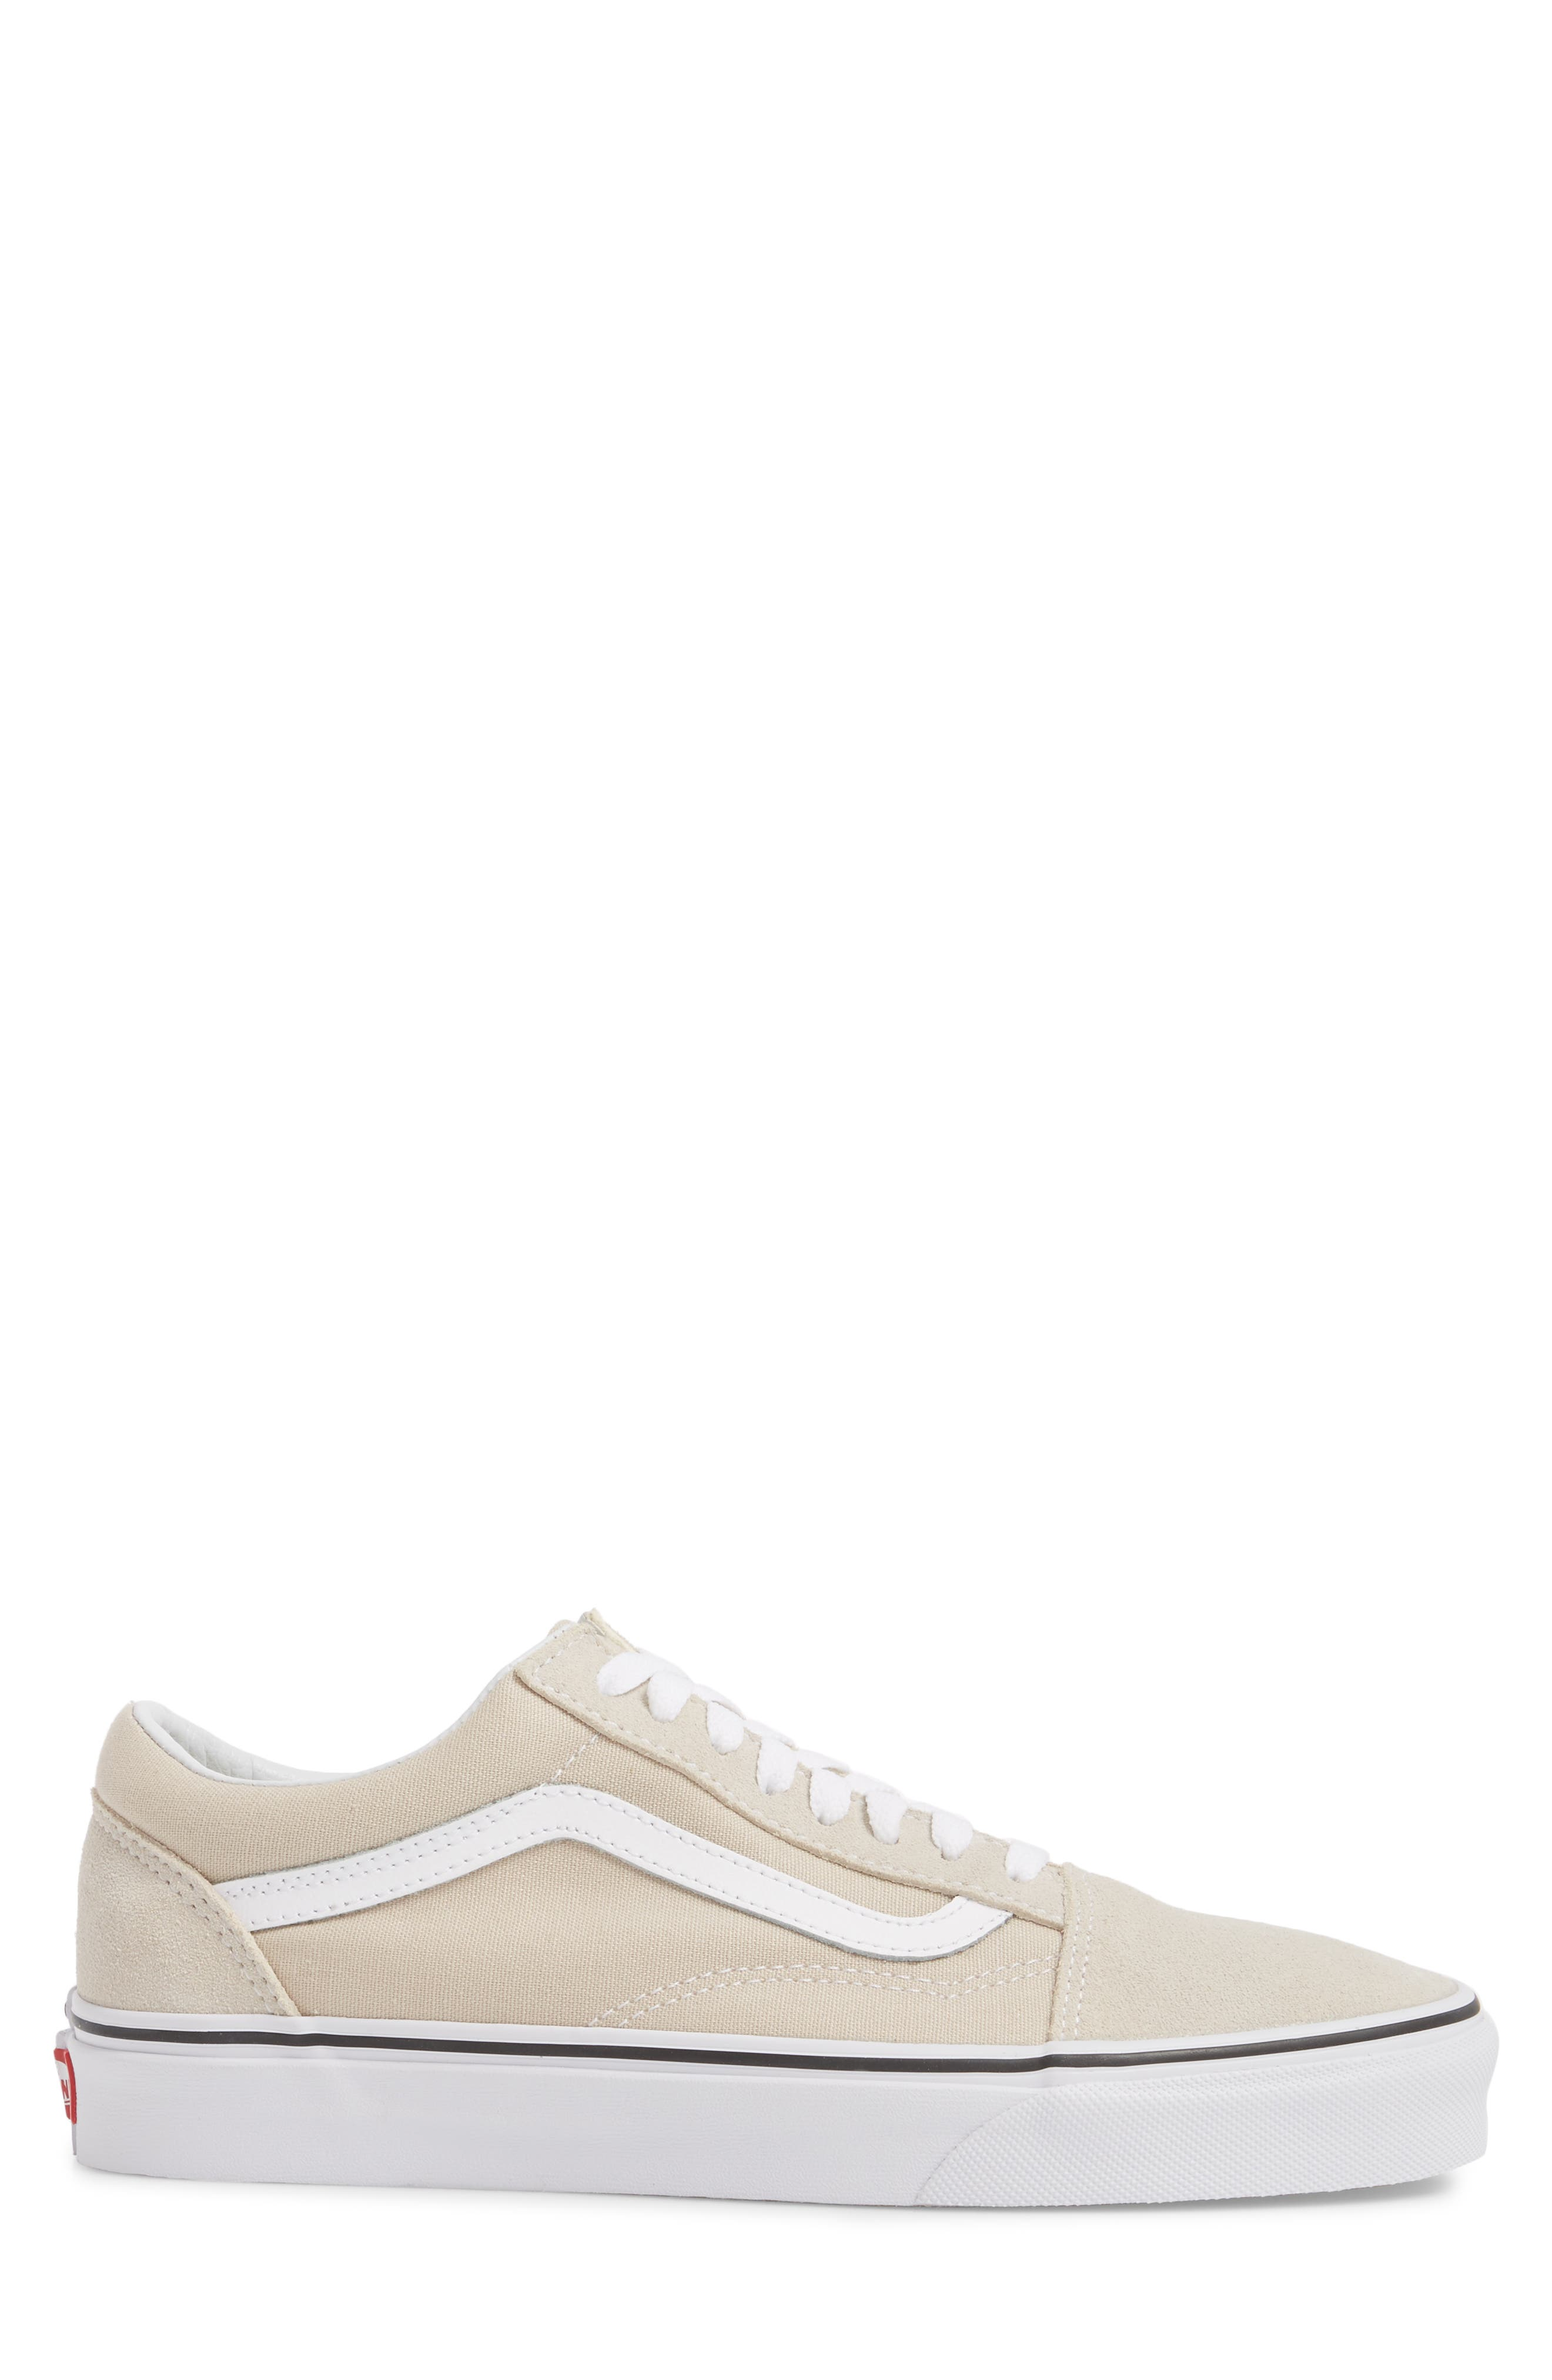 Old Skool Low Top Sneaker,                             Alternate thumbnail 3, color,                             Silver Lining/ White Leather